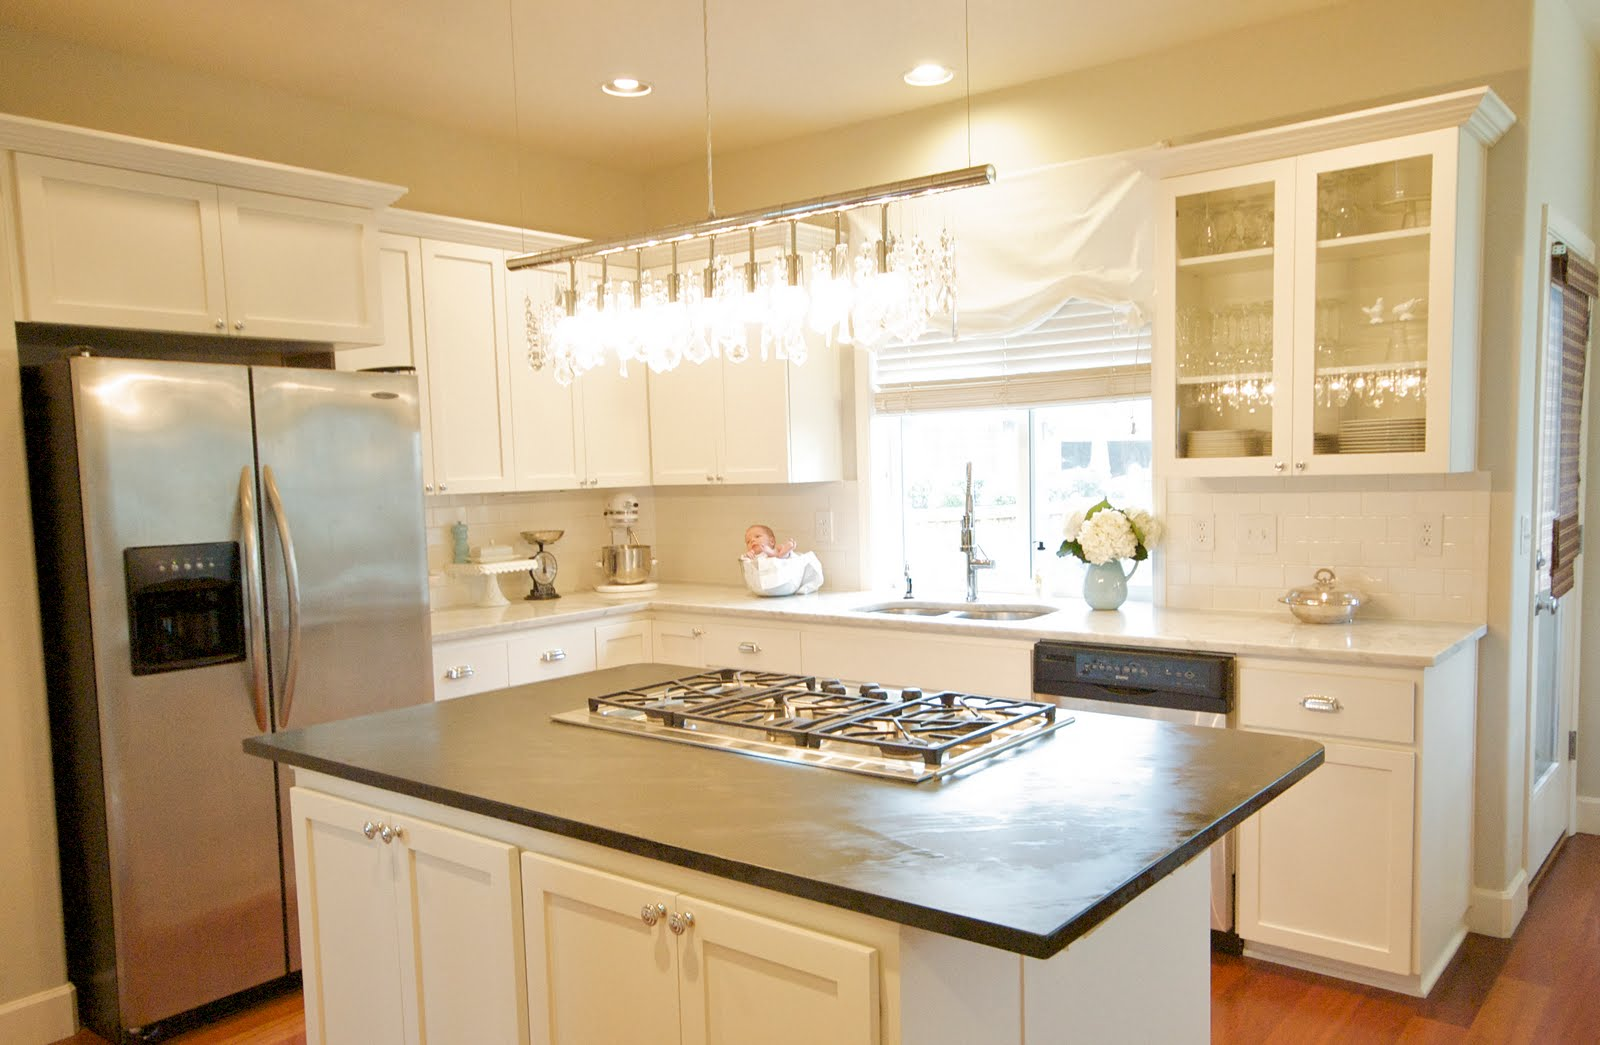 white cabinets and i loved them i loved the kitchen even though it was